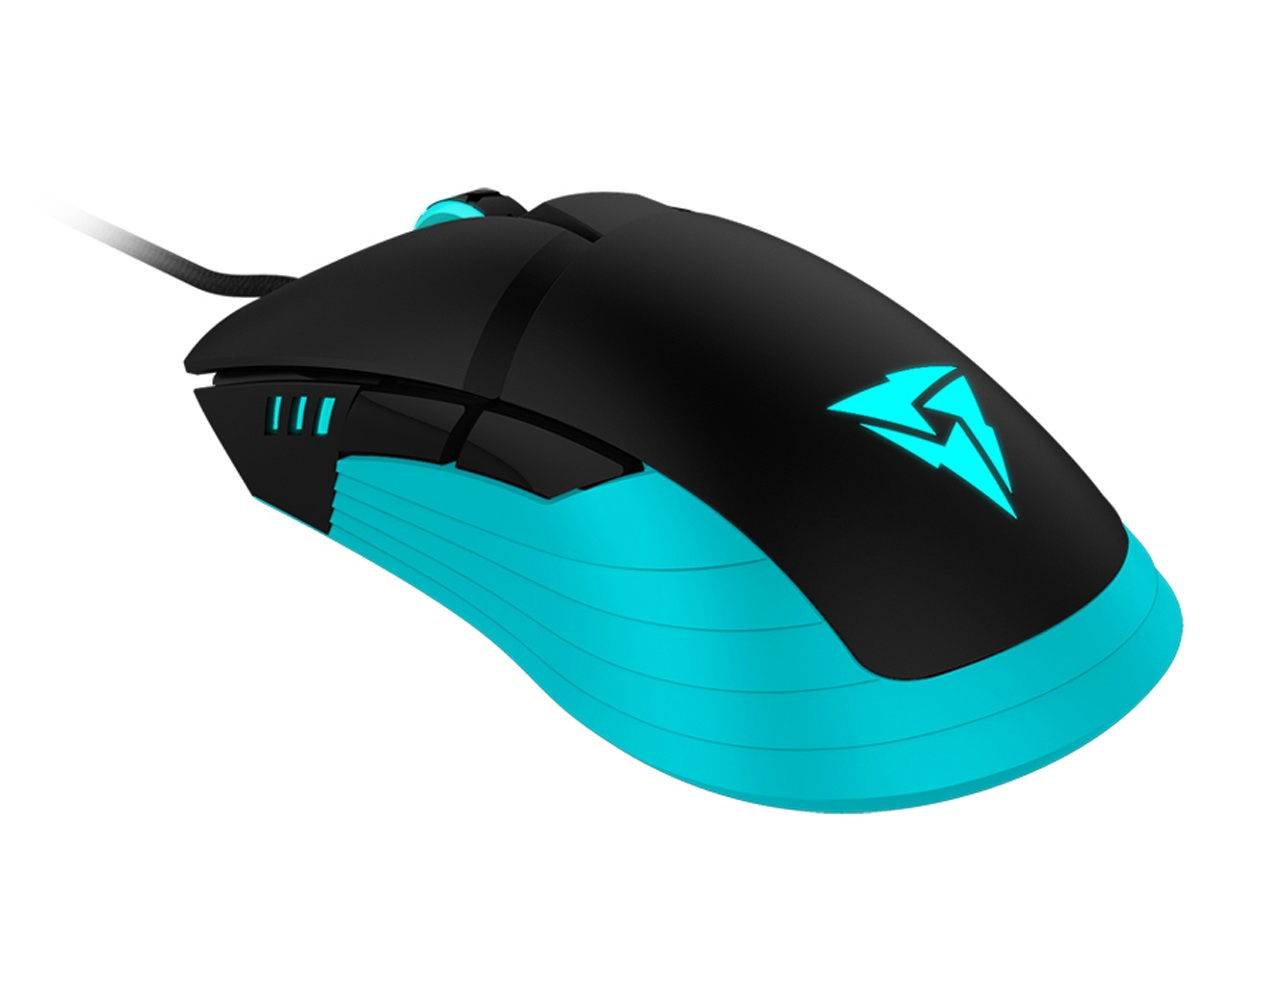 Mouse gaming PRO THUNDERX3 RM5 HEX PMW3325 5000DPI Software HEX 6 Botones